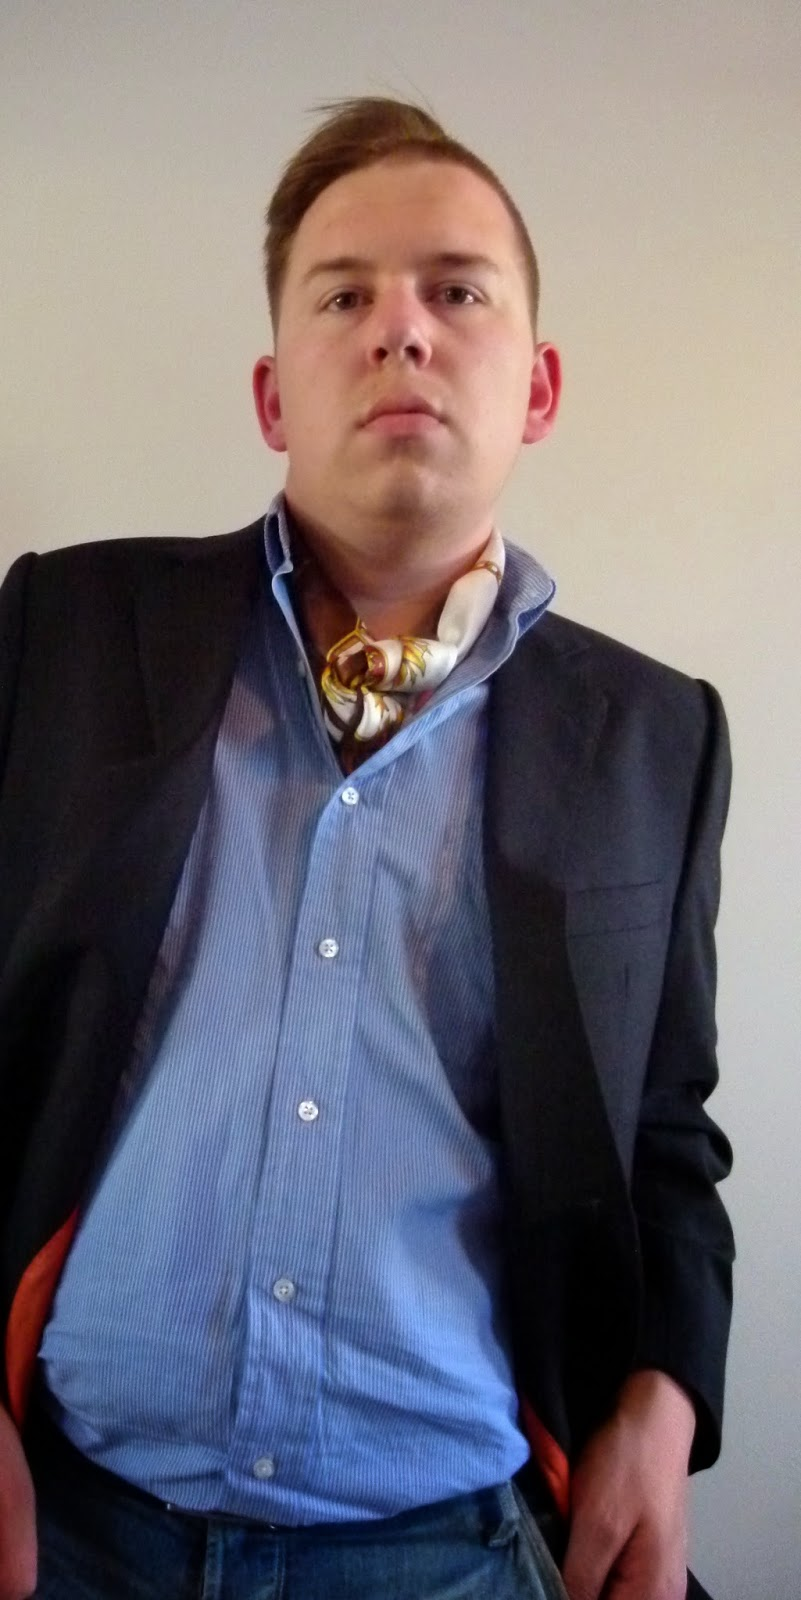 Daily outfit a scarf in place of a tie ink leathers i decided to forego a necktie today and went with a scarf tied and resting inside my shirt its a look that ive admired on men much more stylish than ccuart Gallery